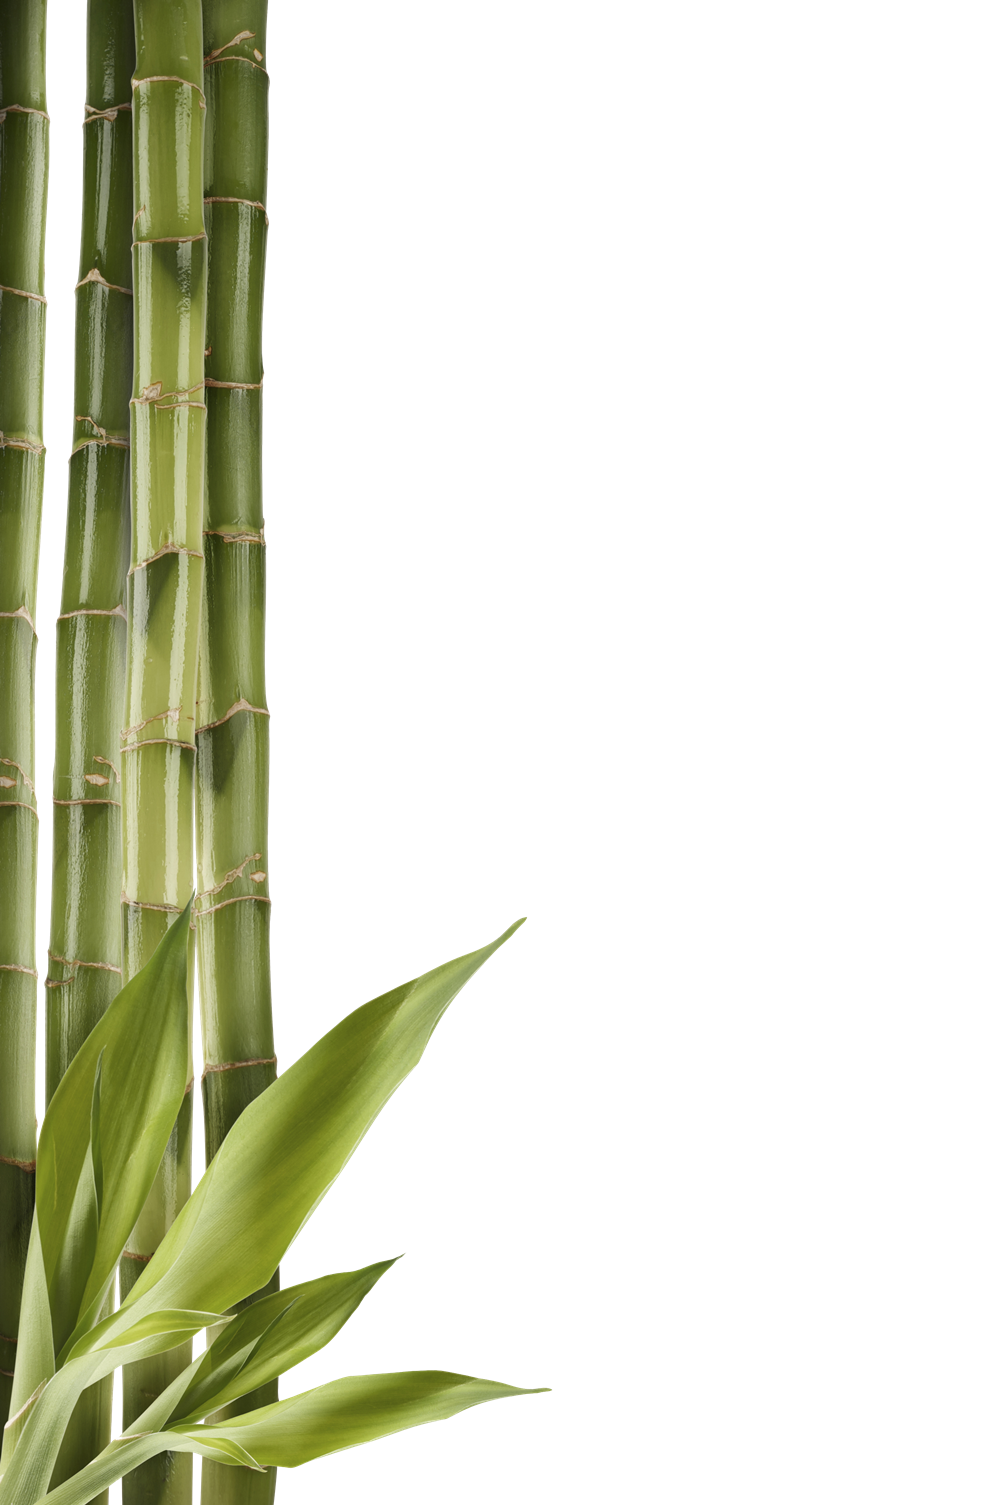 Cane transparent bamboo. Download images free icons